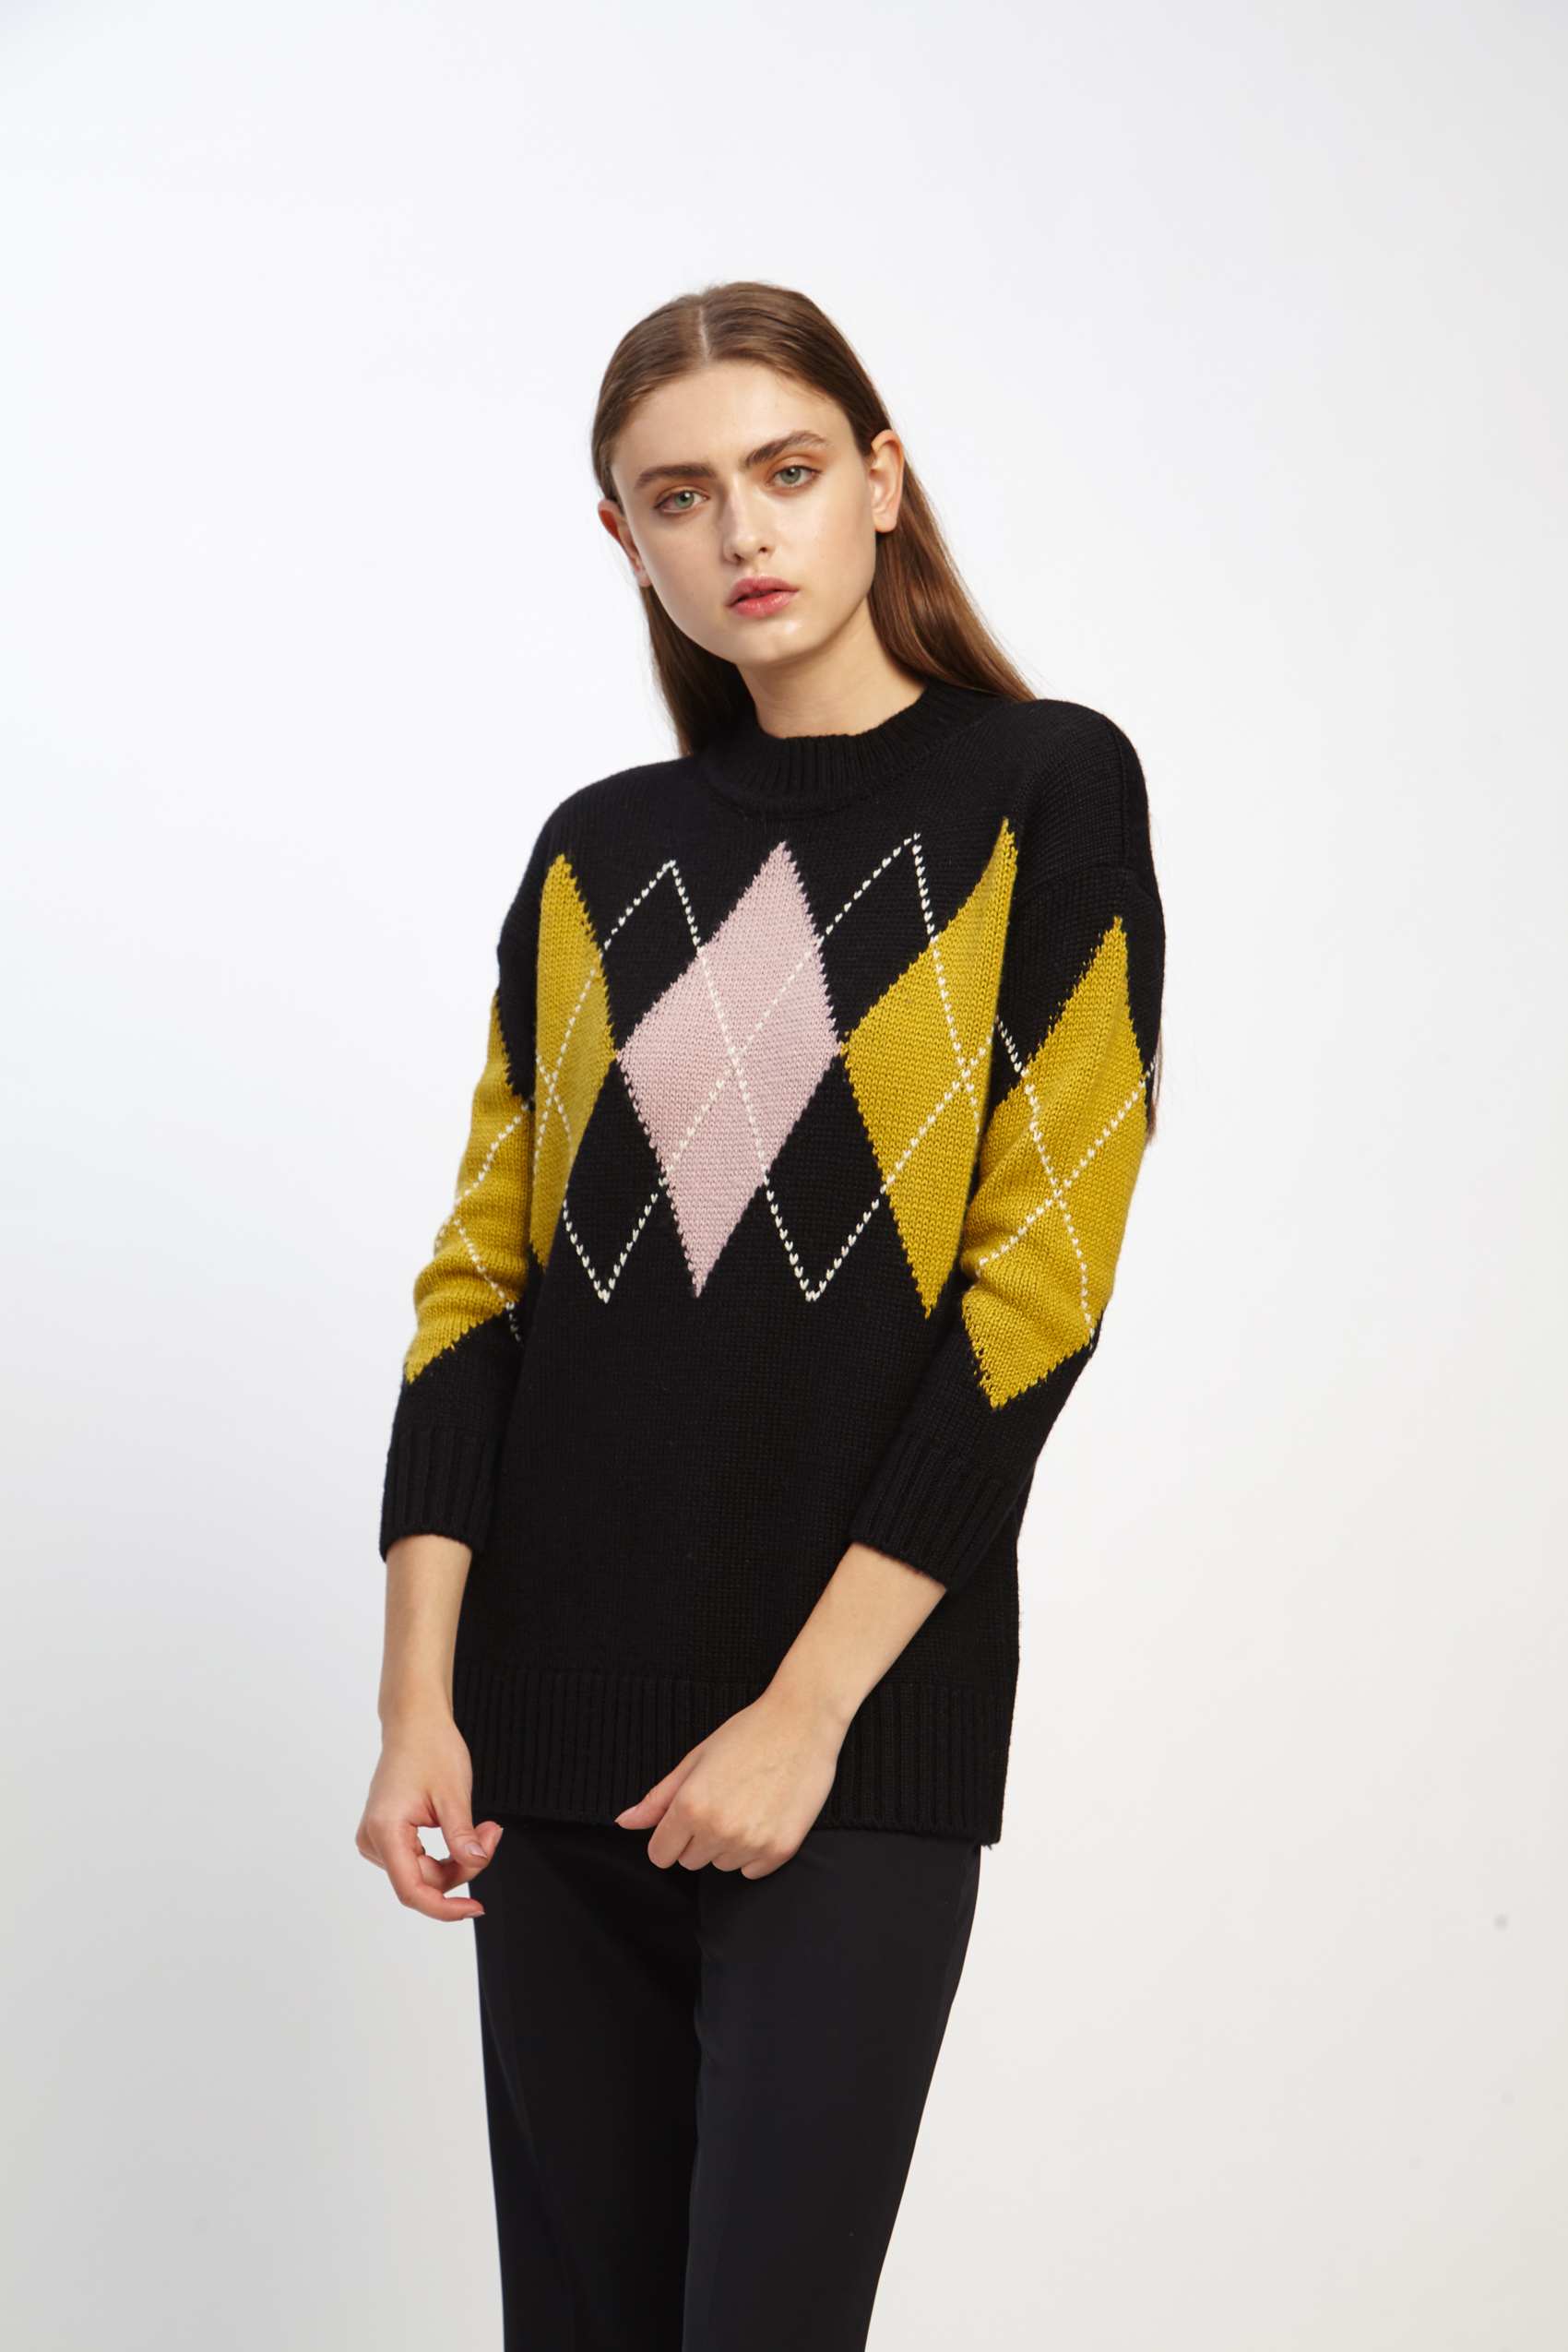 awada_sweater-emmanuelle_44-16-2020__picture-2514